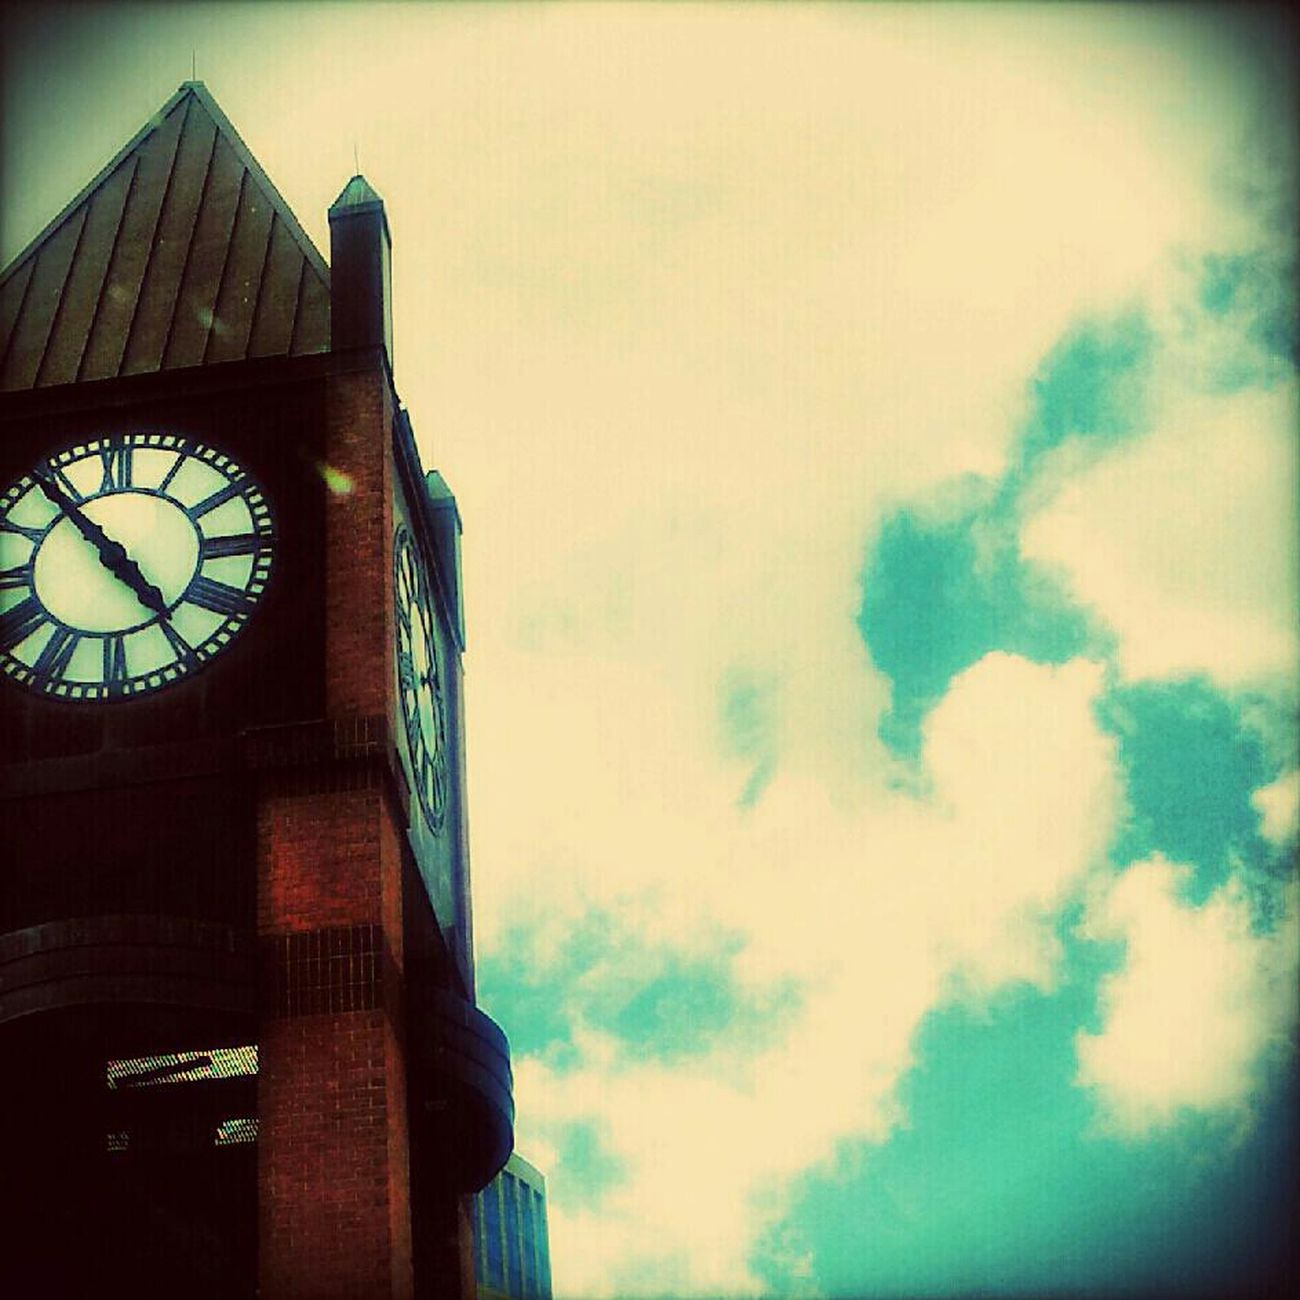 Clouds Streetphotography Clock Sky Quality Time Time Taking Photos Blue Building Clouds And Sky Jus Because